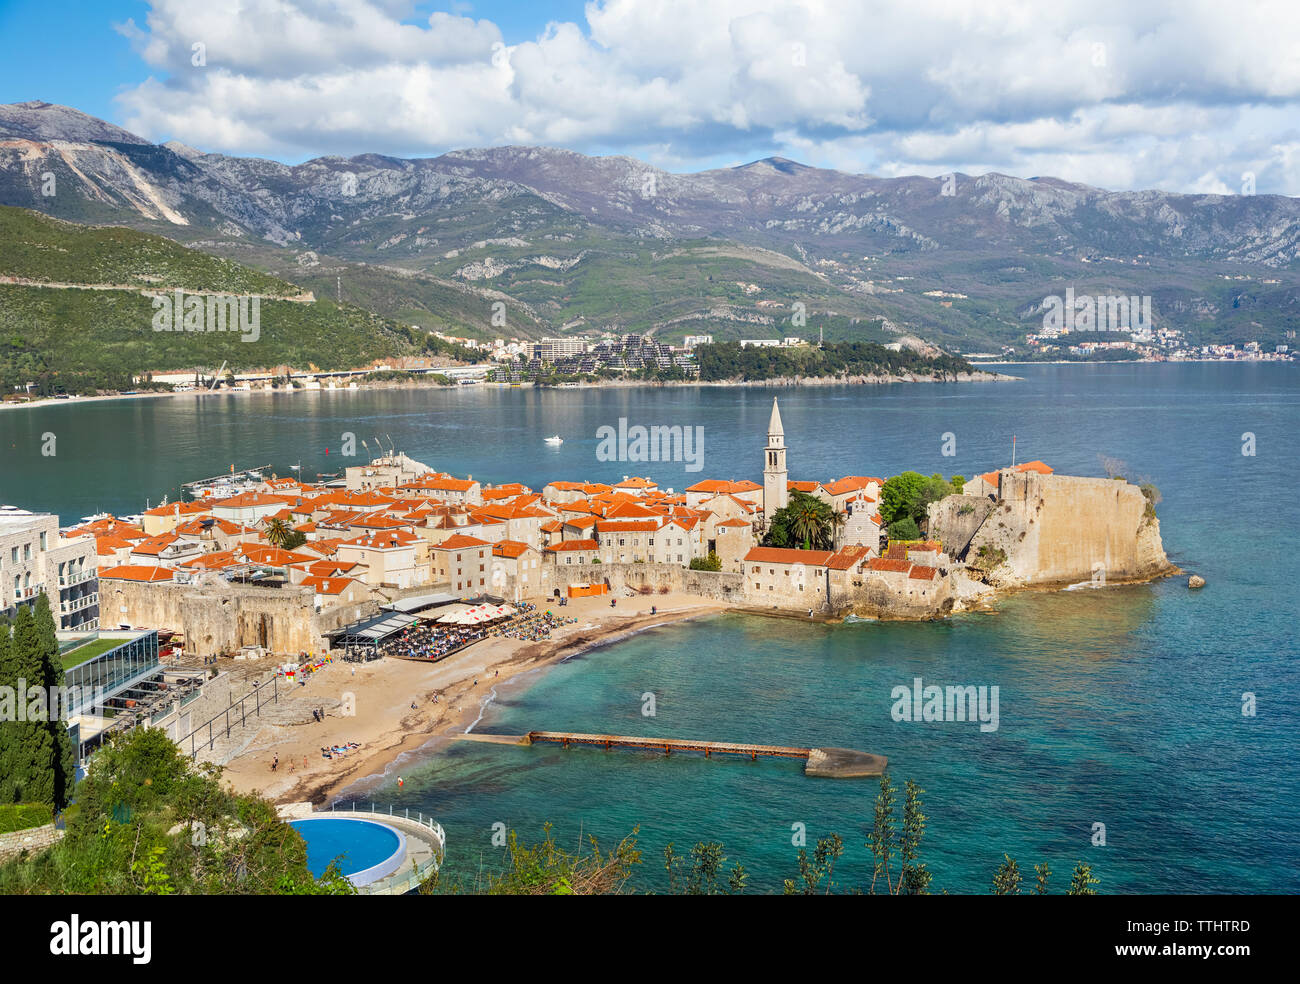 Aerial view of Budva Old Town and beach, Montenegro - Stock Image